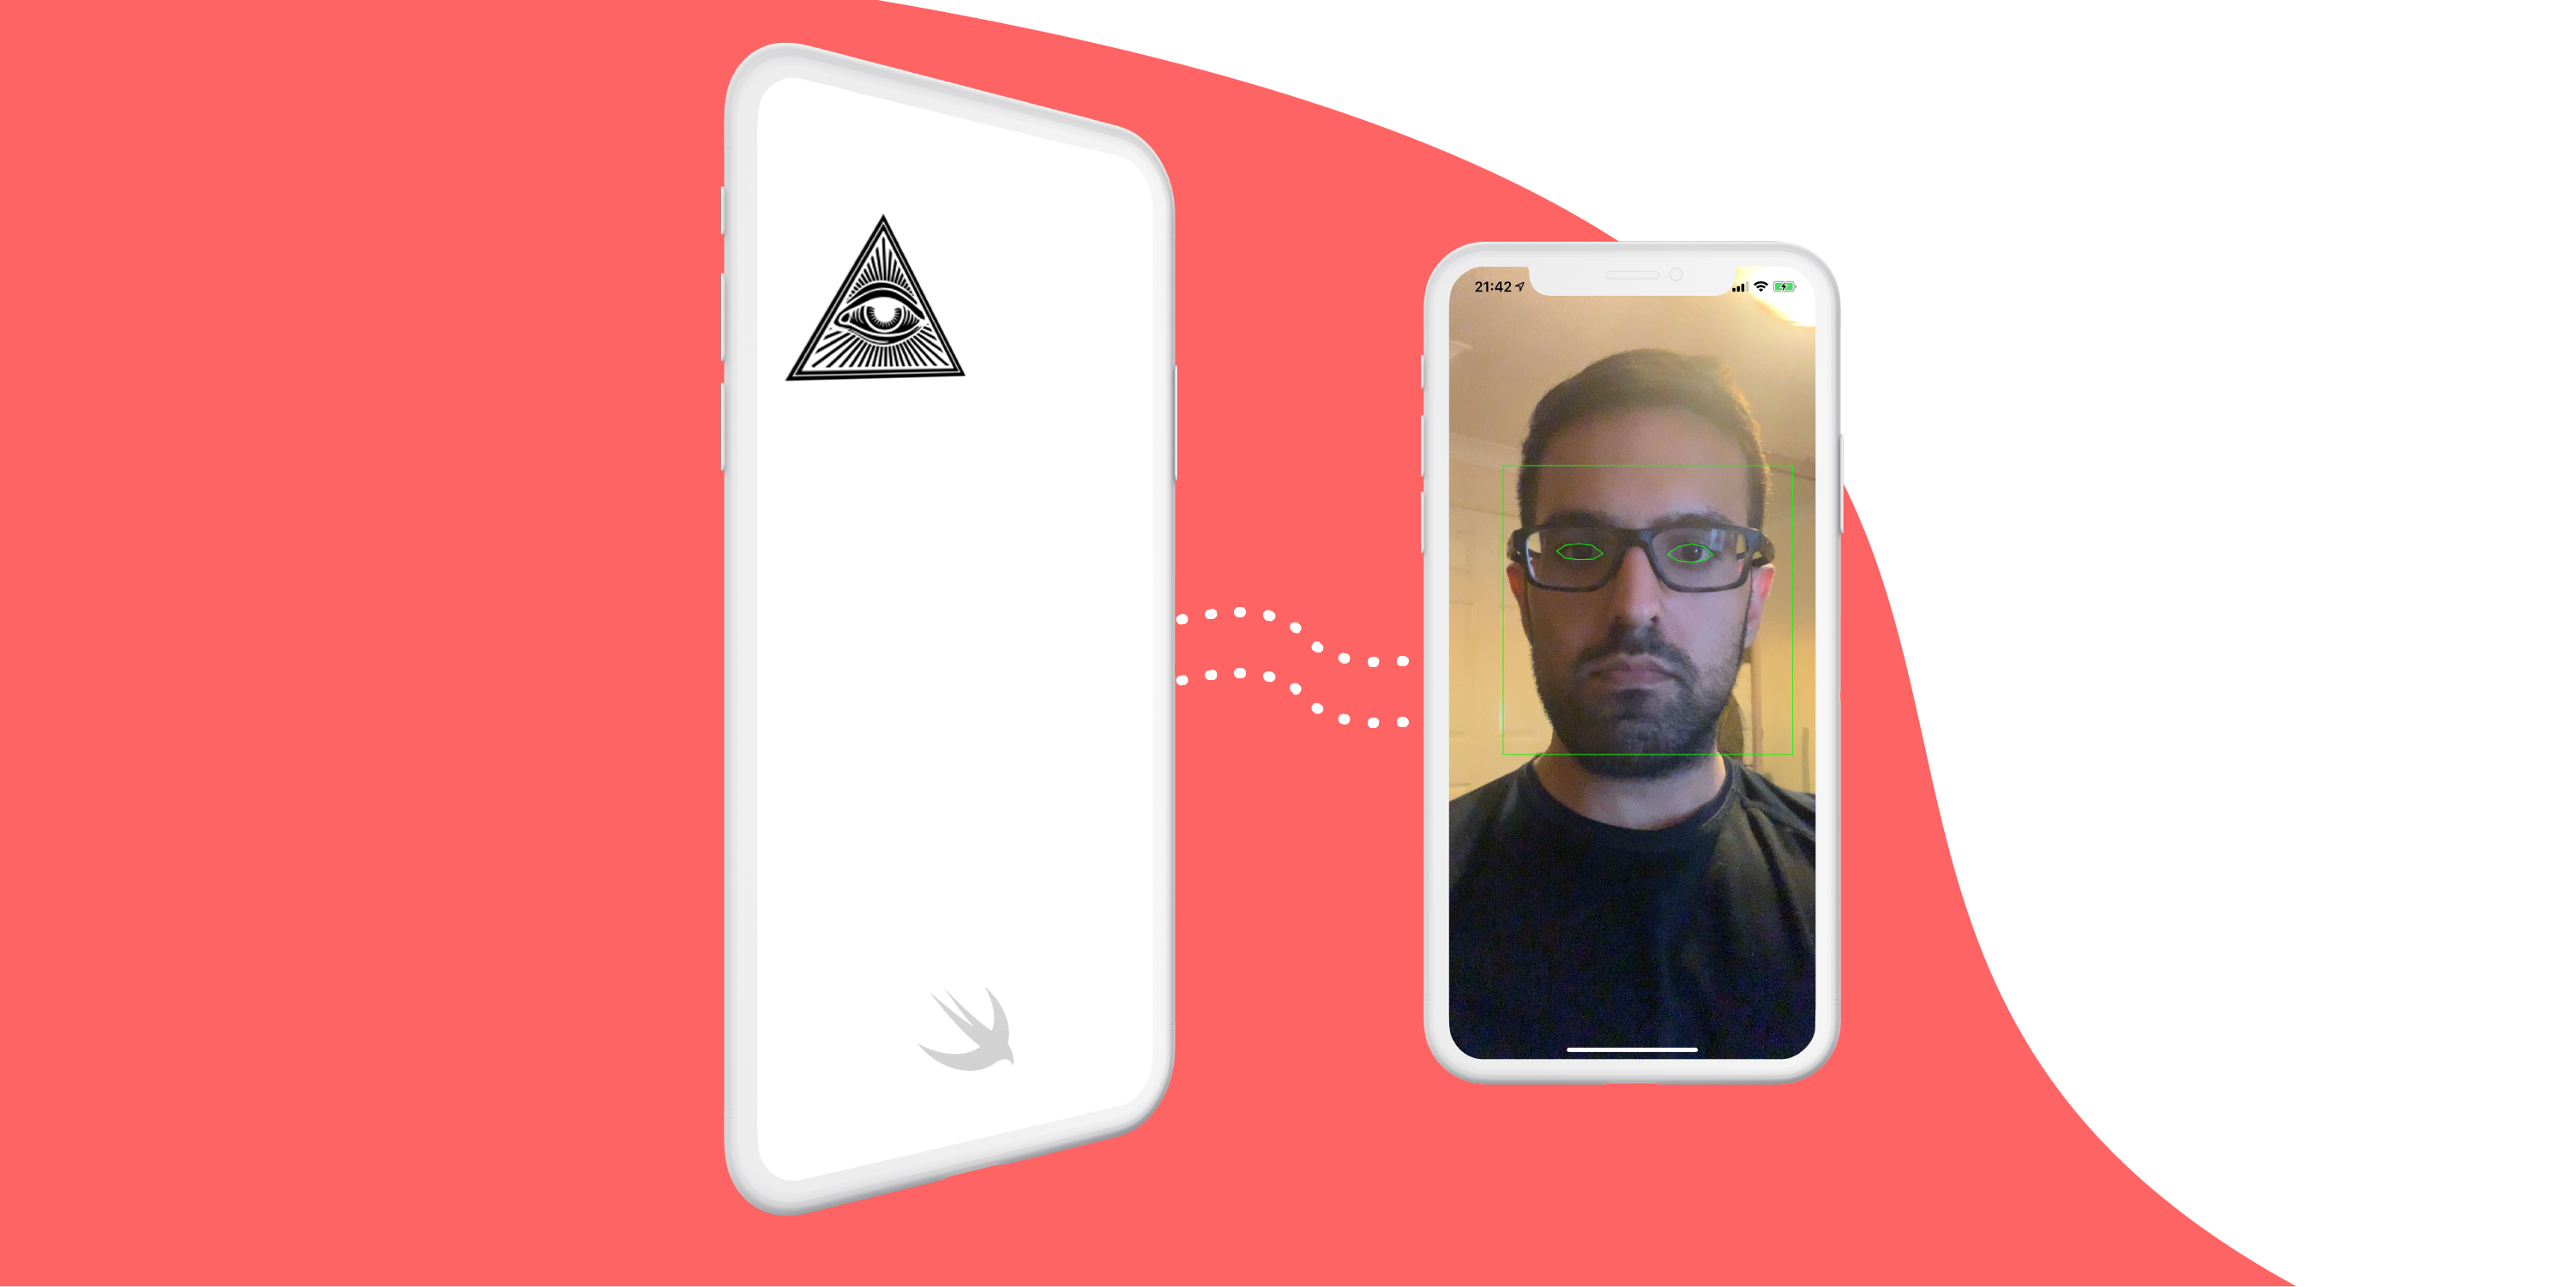 Live Face Tracking on iOS using Vision Framework - Onfido